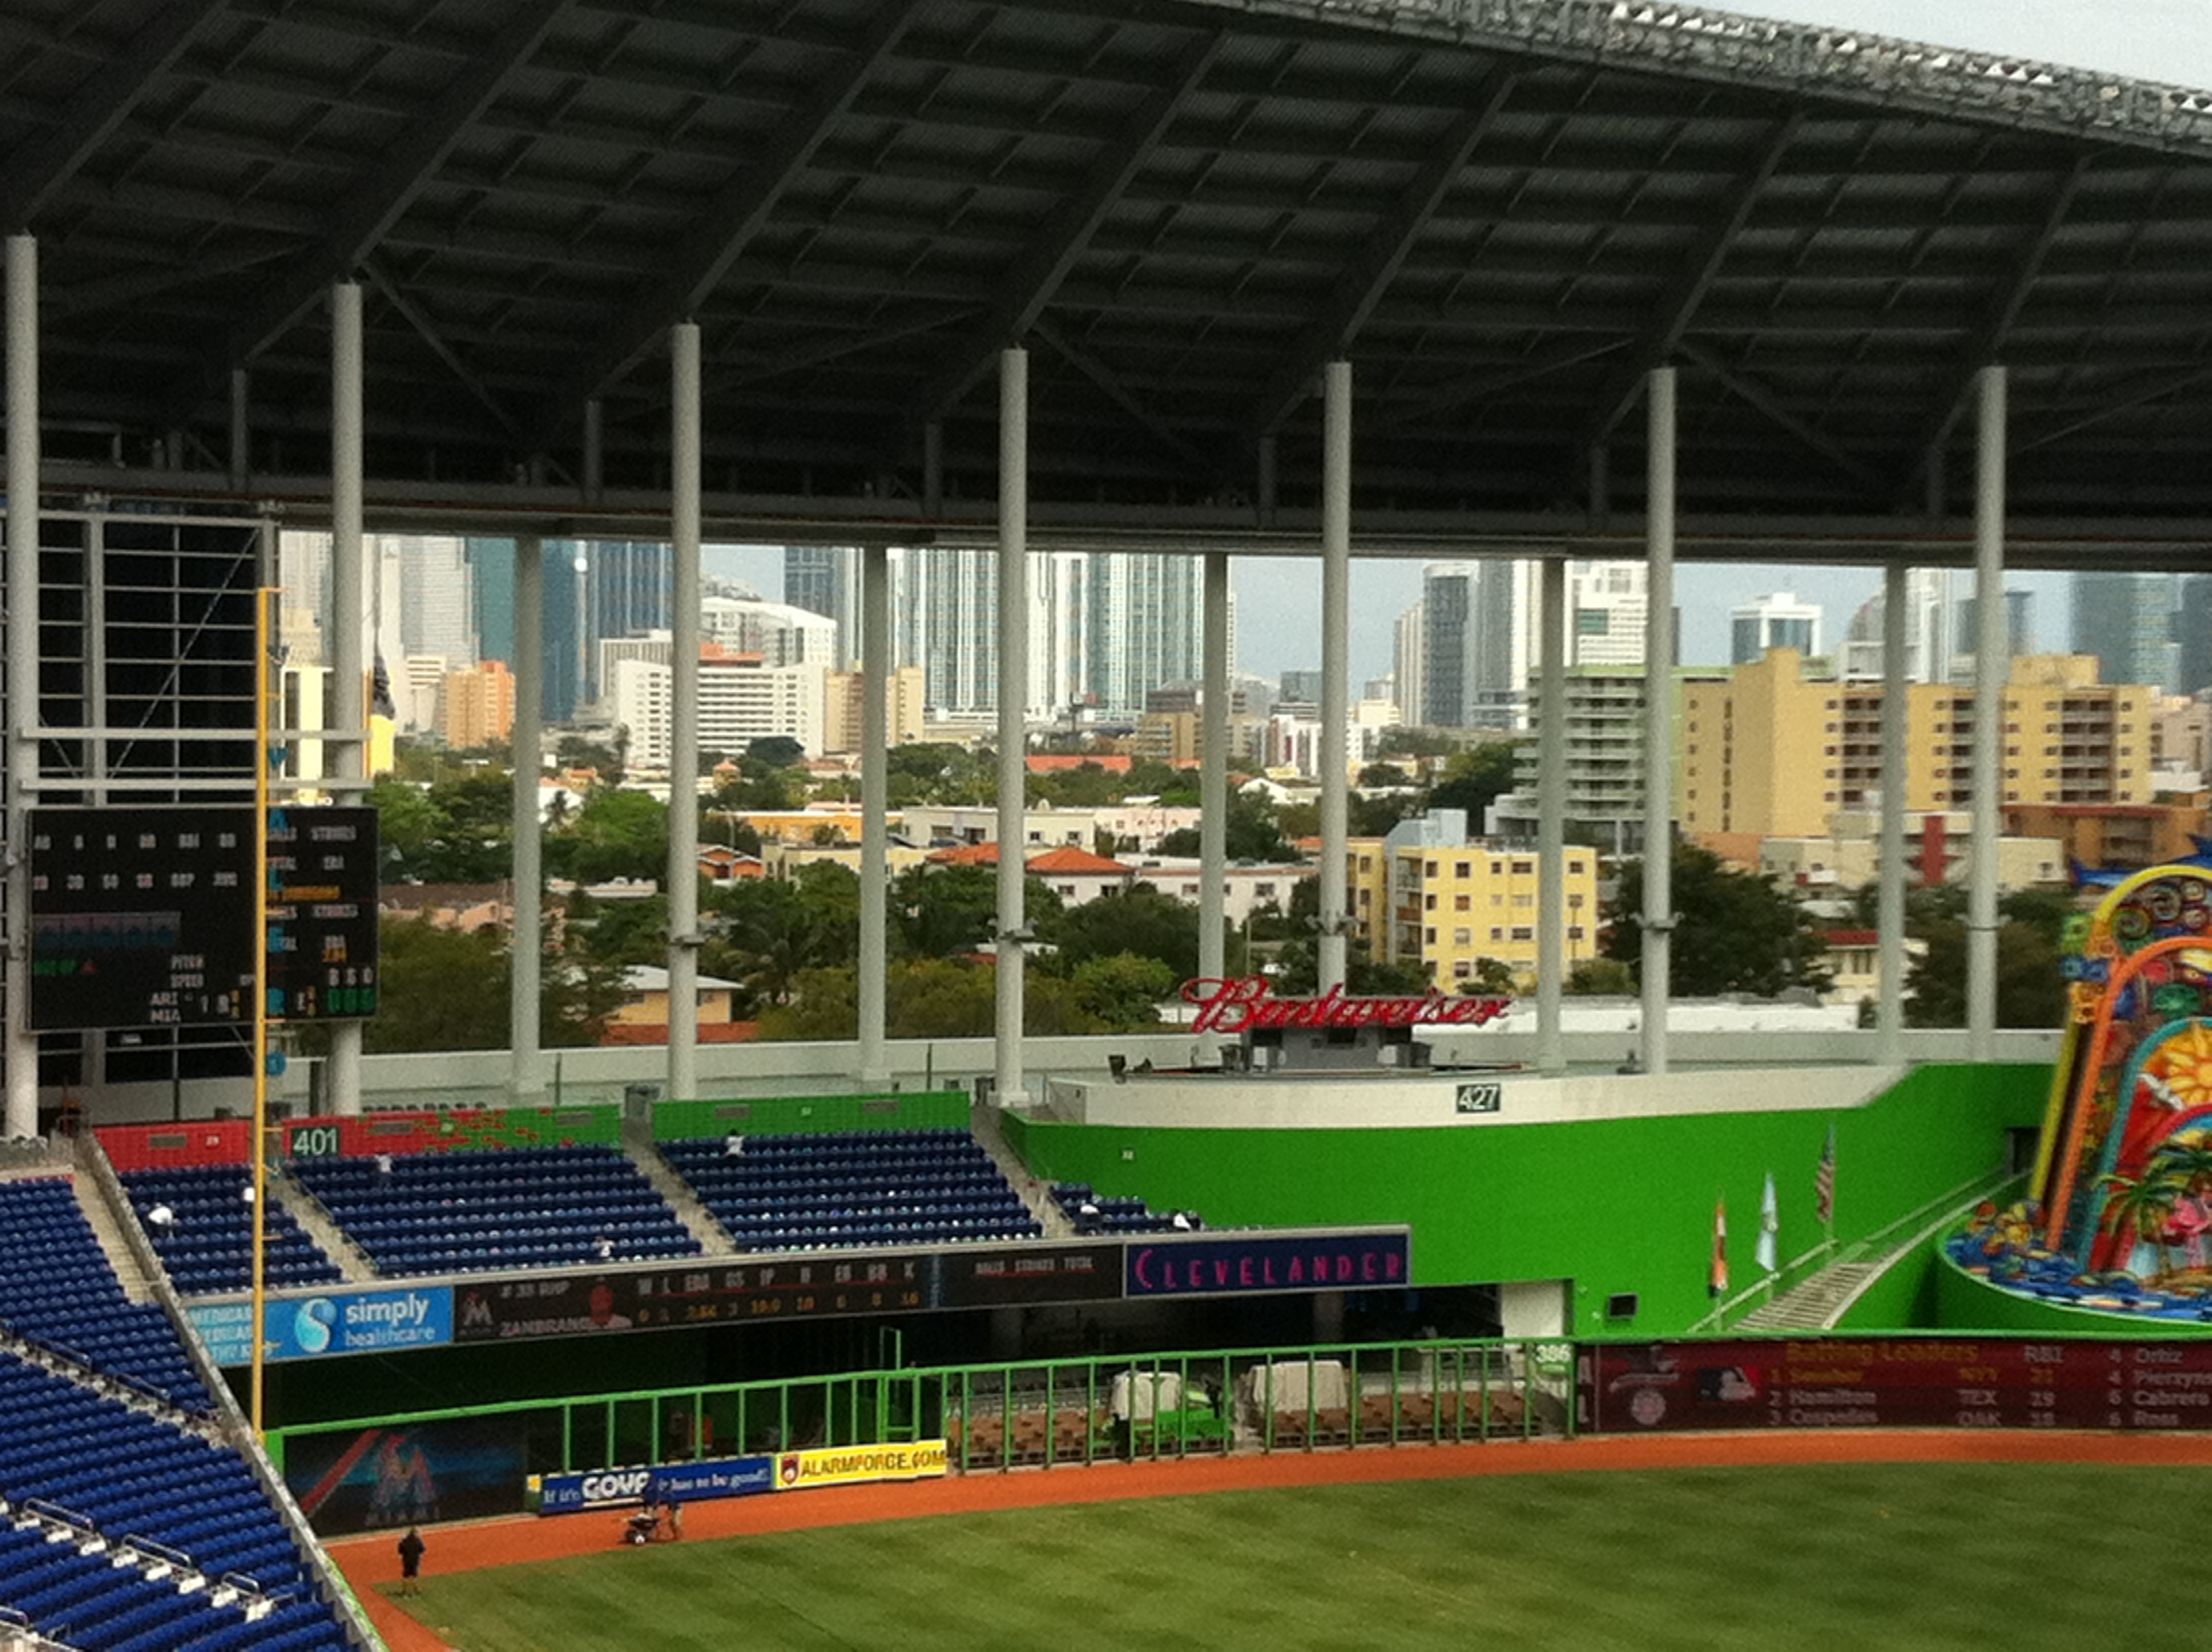 View out to left field.